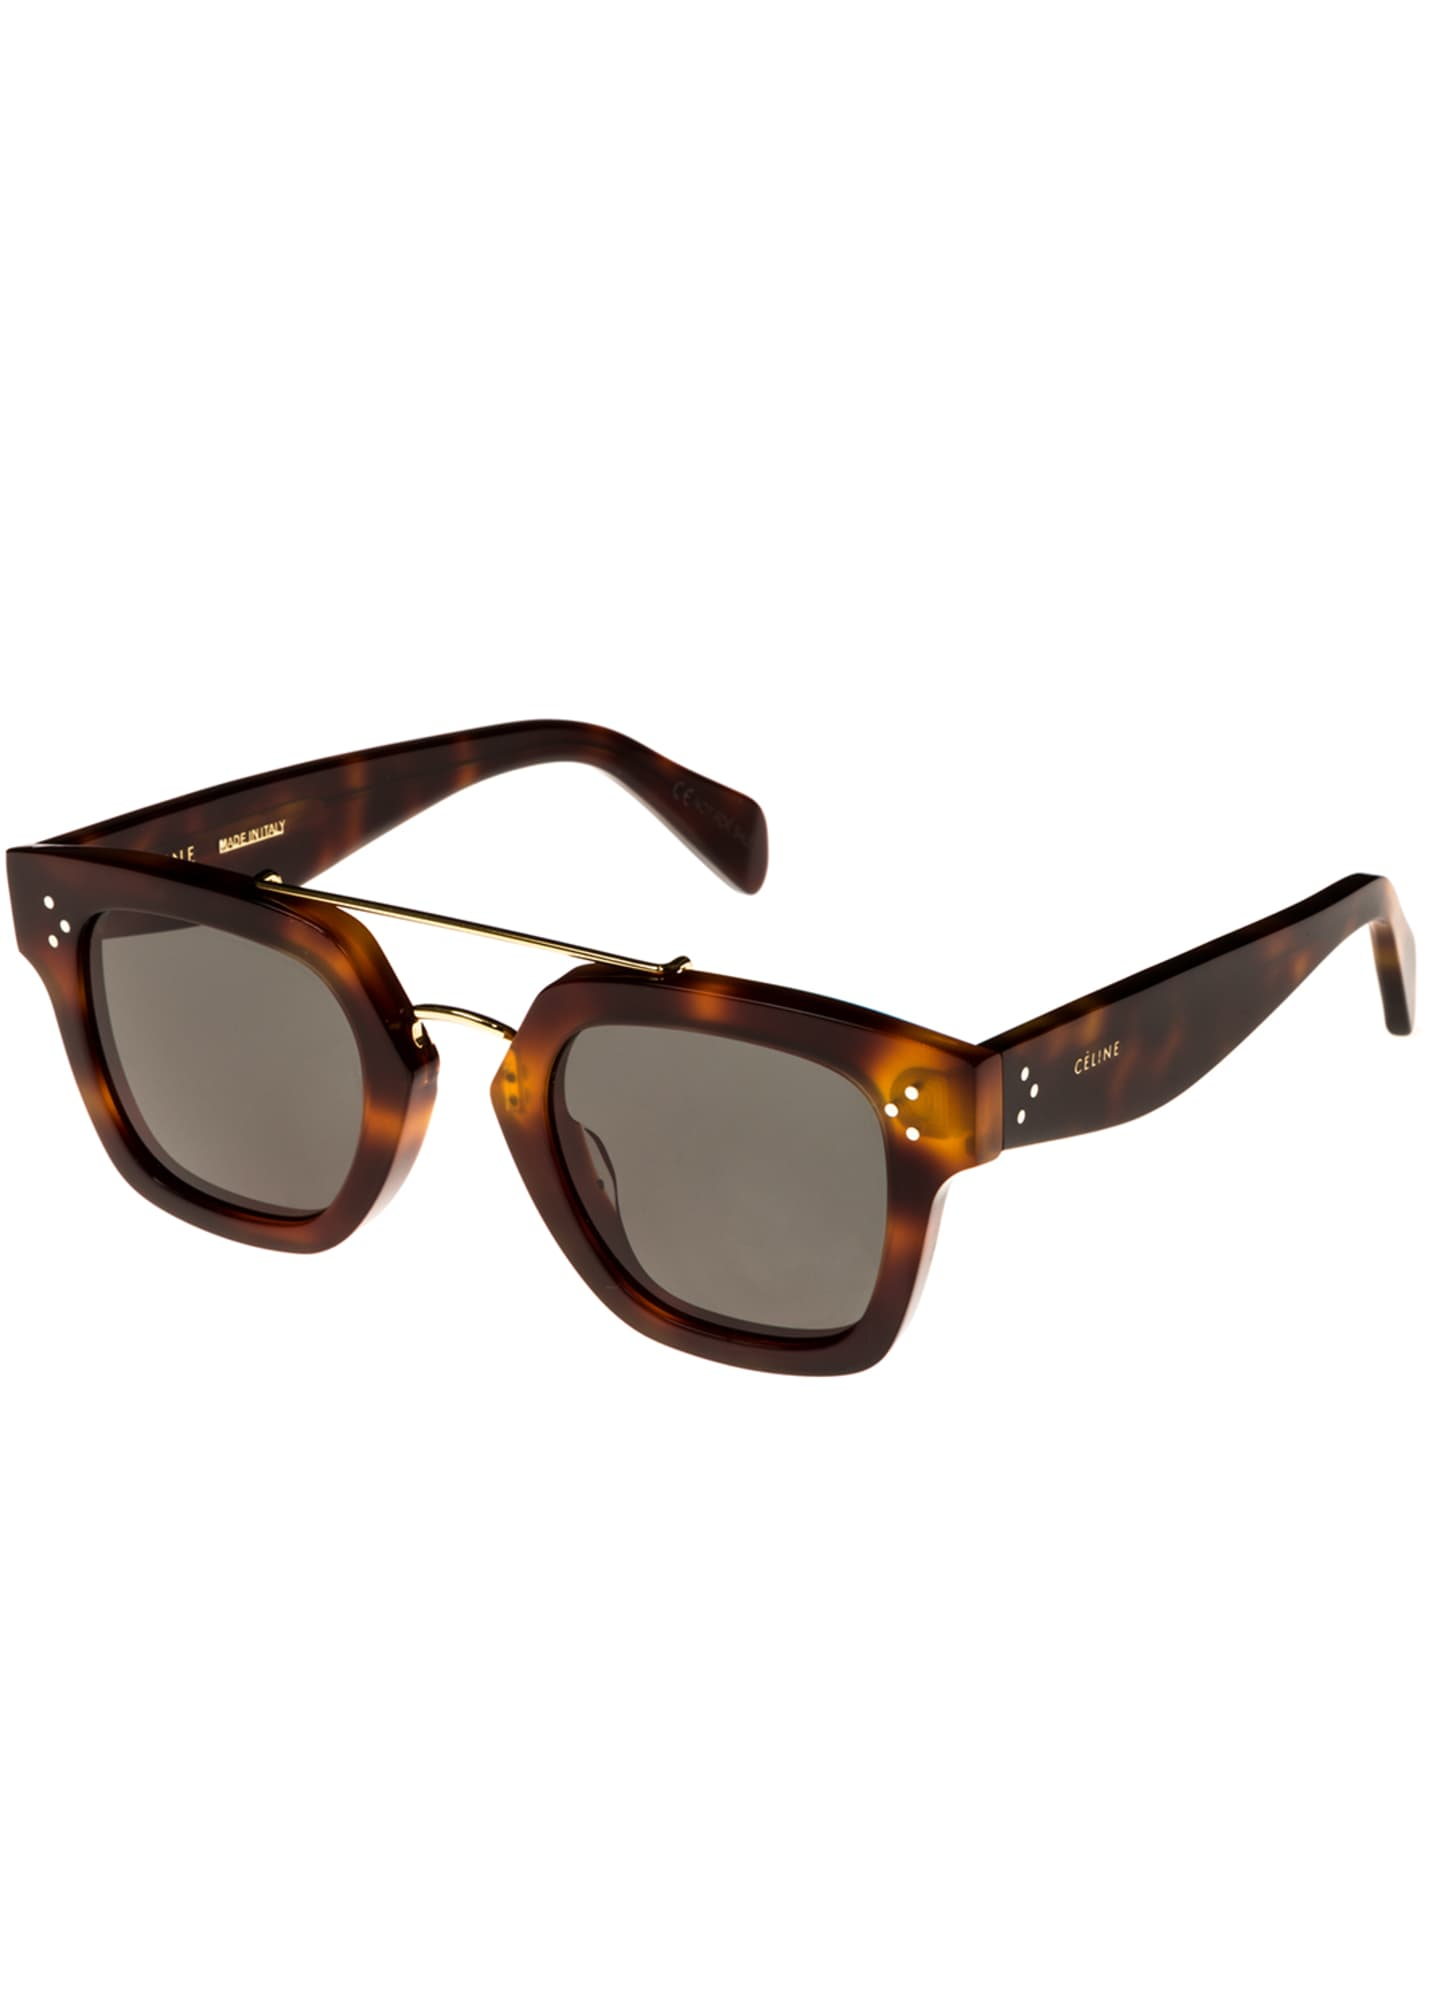 Celine Square Monochromatic Acetate & Metal Sunglasses, Brown